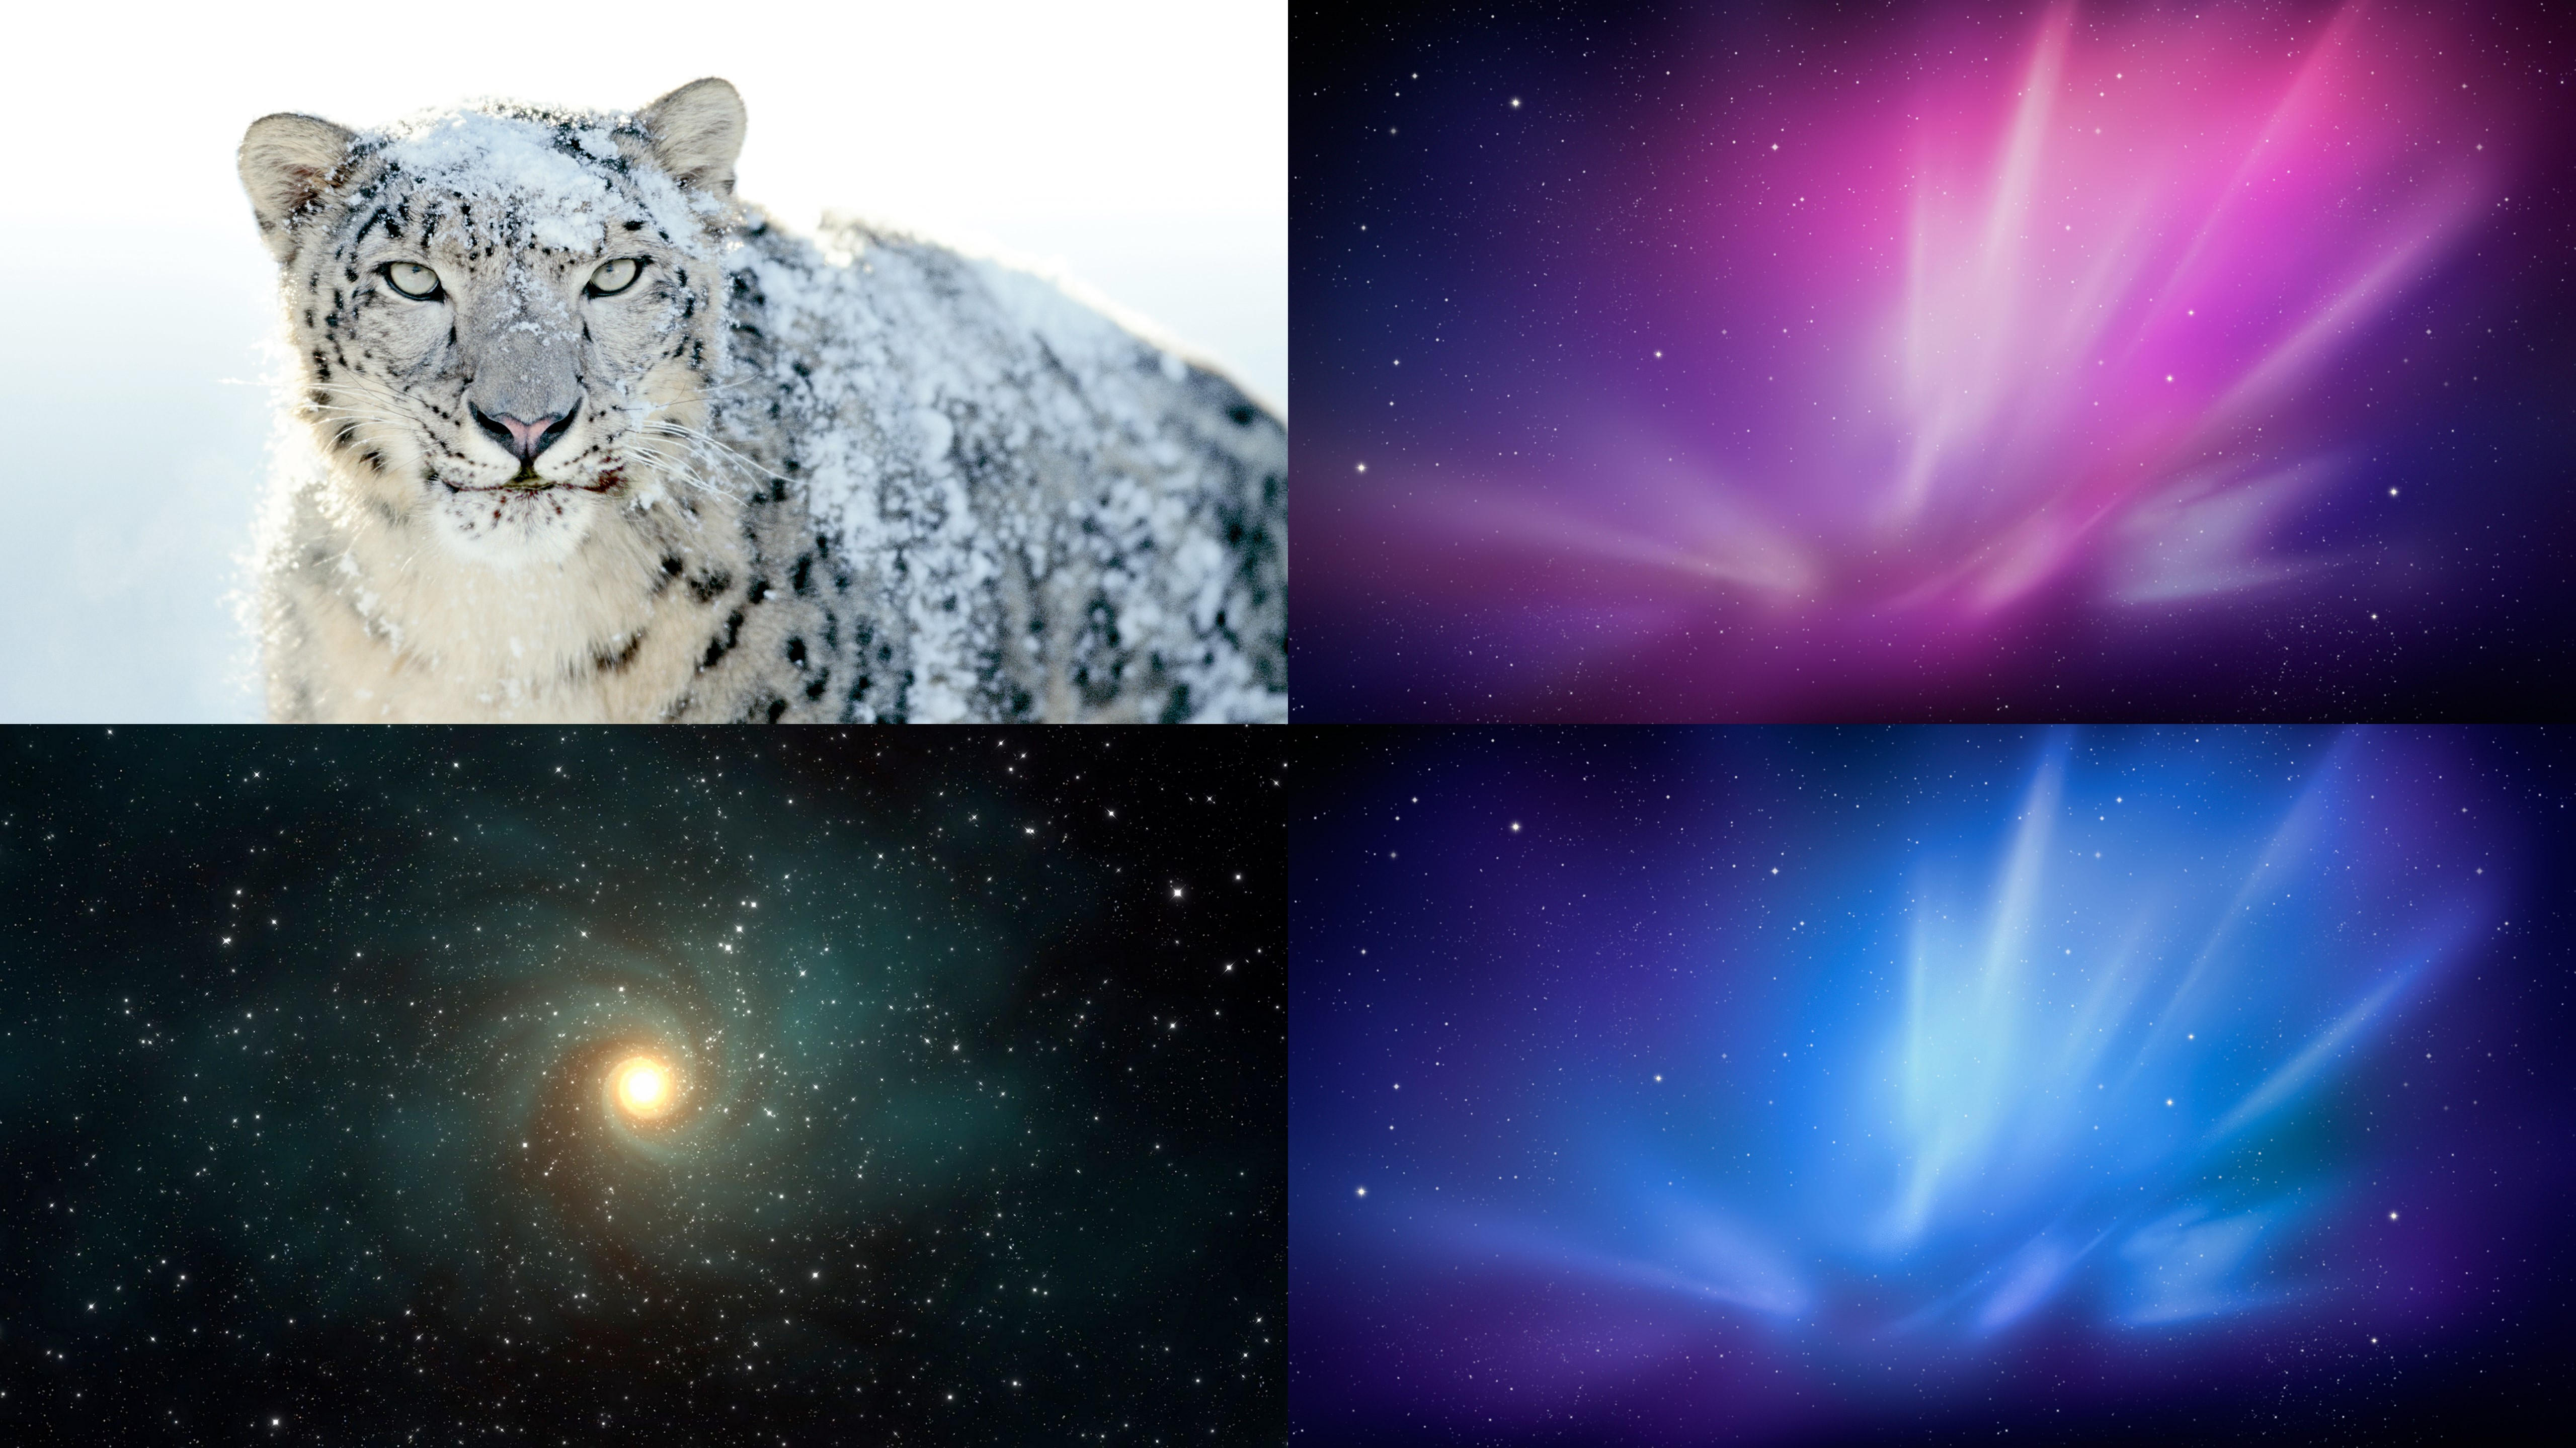 Snow Leopard Wallpaper Pack by akol12 on DeviantArt